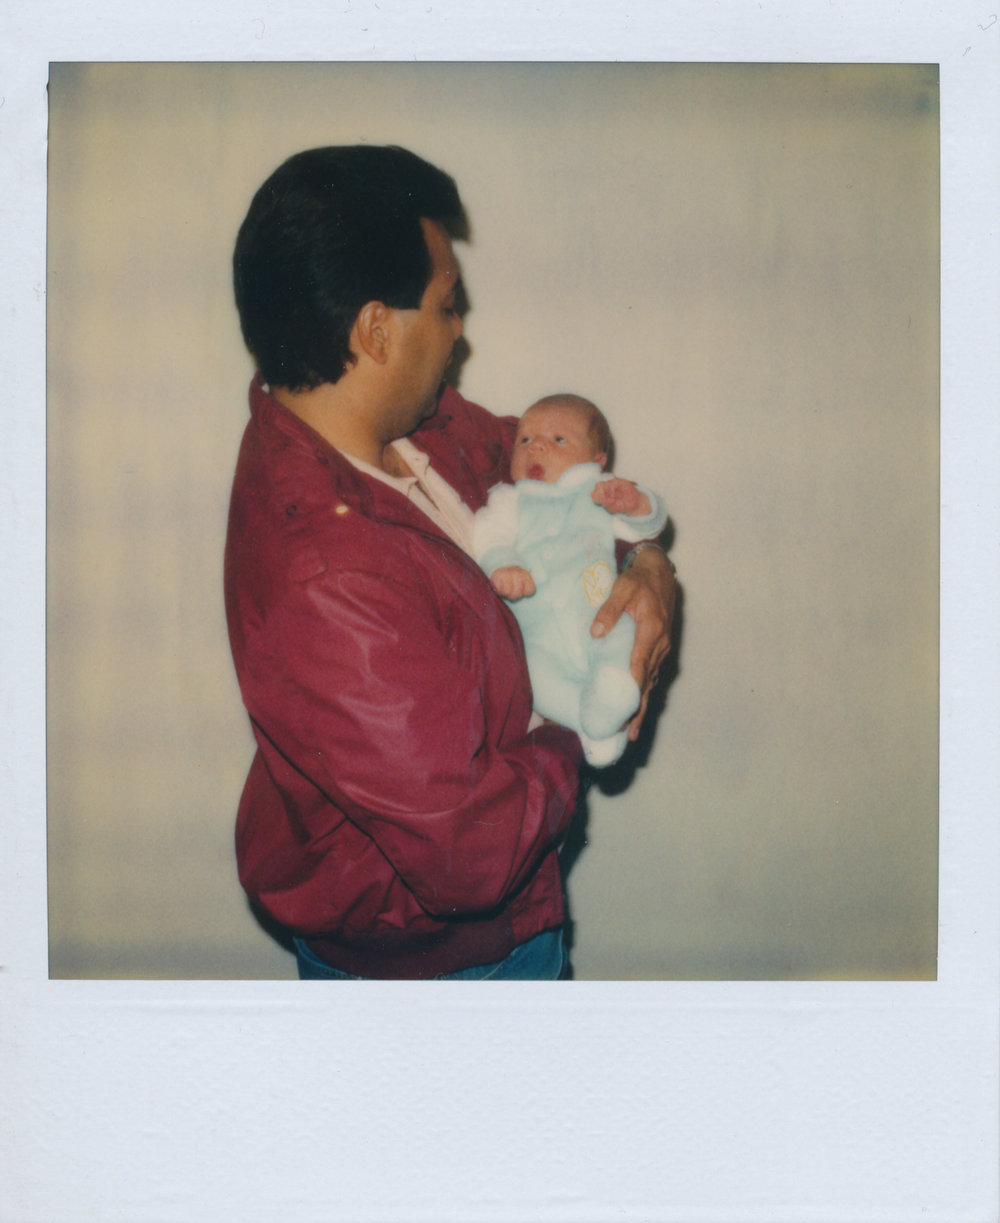 A polaroid of my Dad and my oldest Nephew in the mid to late 80s. No processing until I scanned it.